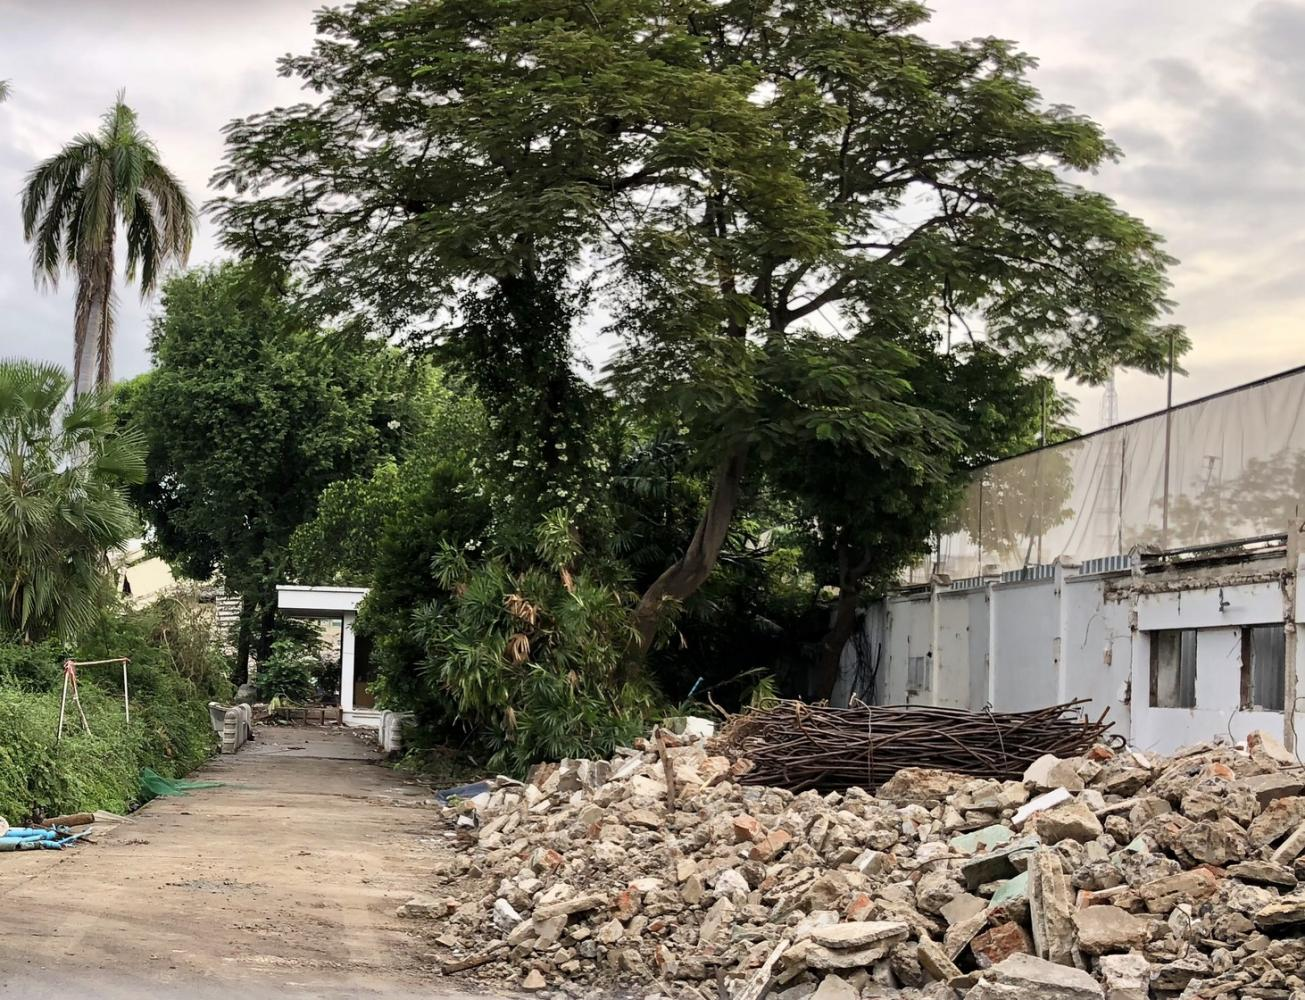 Debris is seen at Ban Si Sao Thewes, the former home of late Privy Council president Prem Tinsulanonda, which is being demolished.WASSANA NANUAM